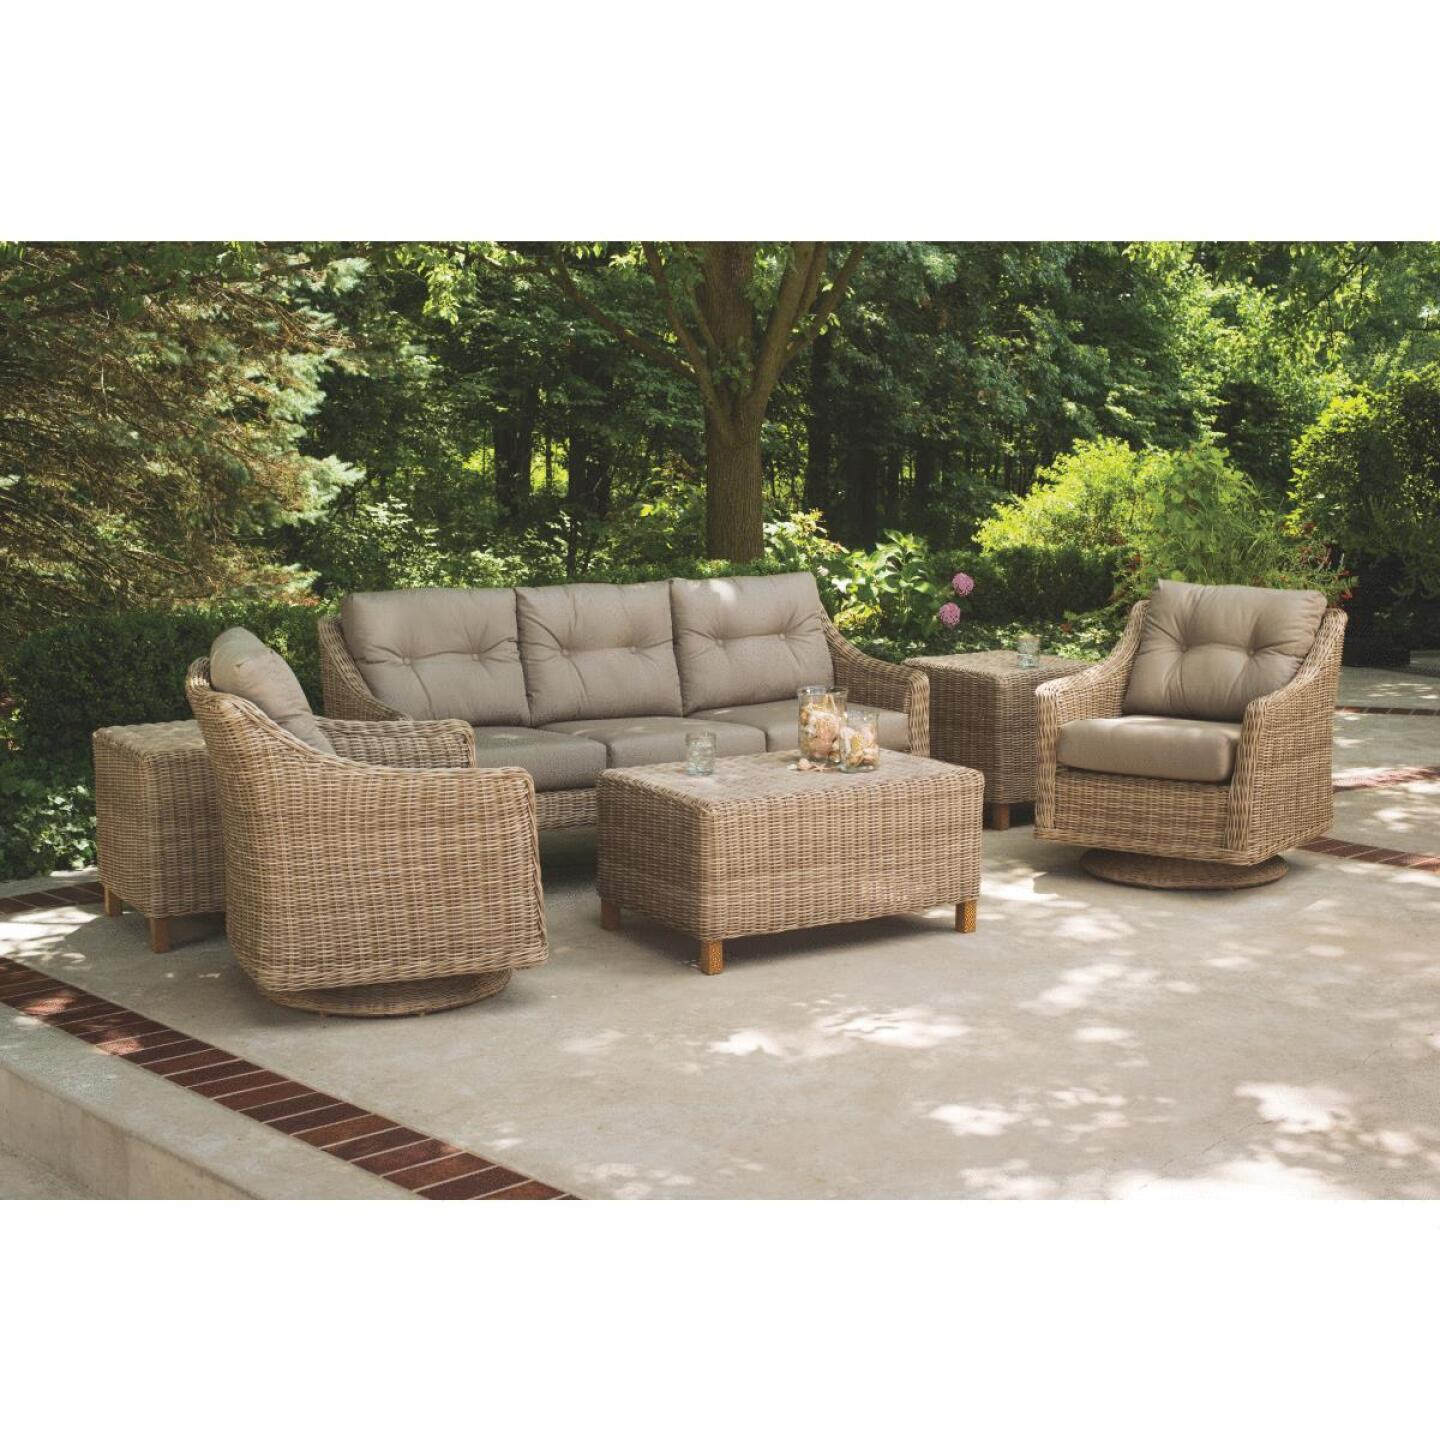 Cambria 3-Person 73 In. W. x 31 In. H. x 29 In. D. Taupe Wicker Sofa Image 5